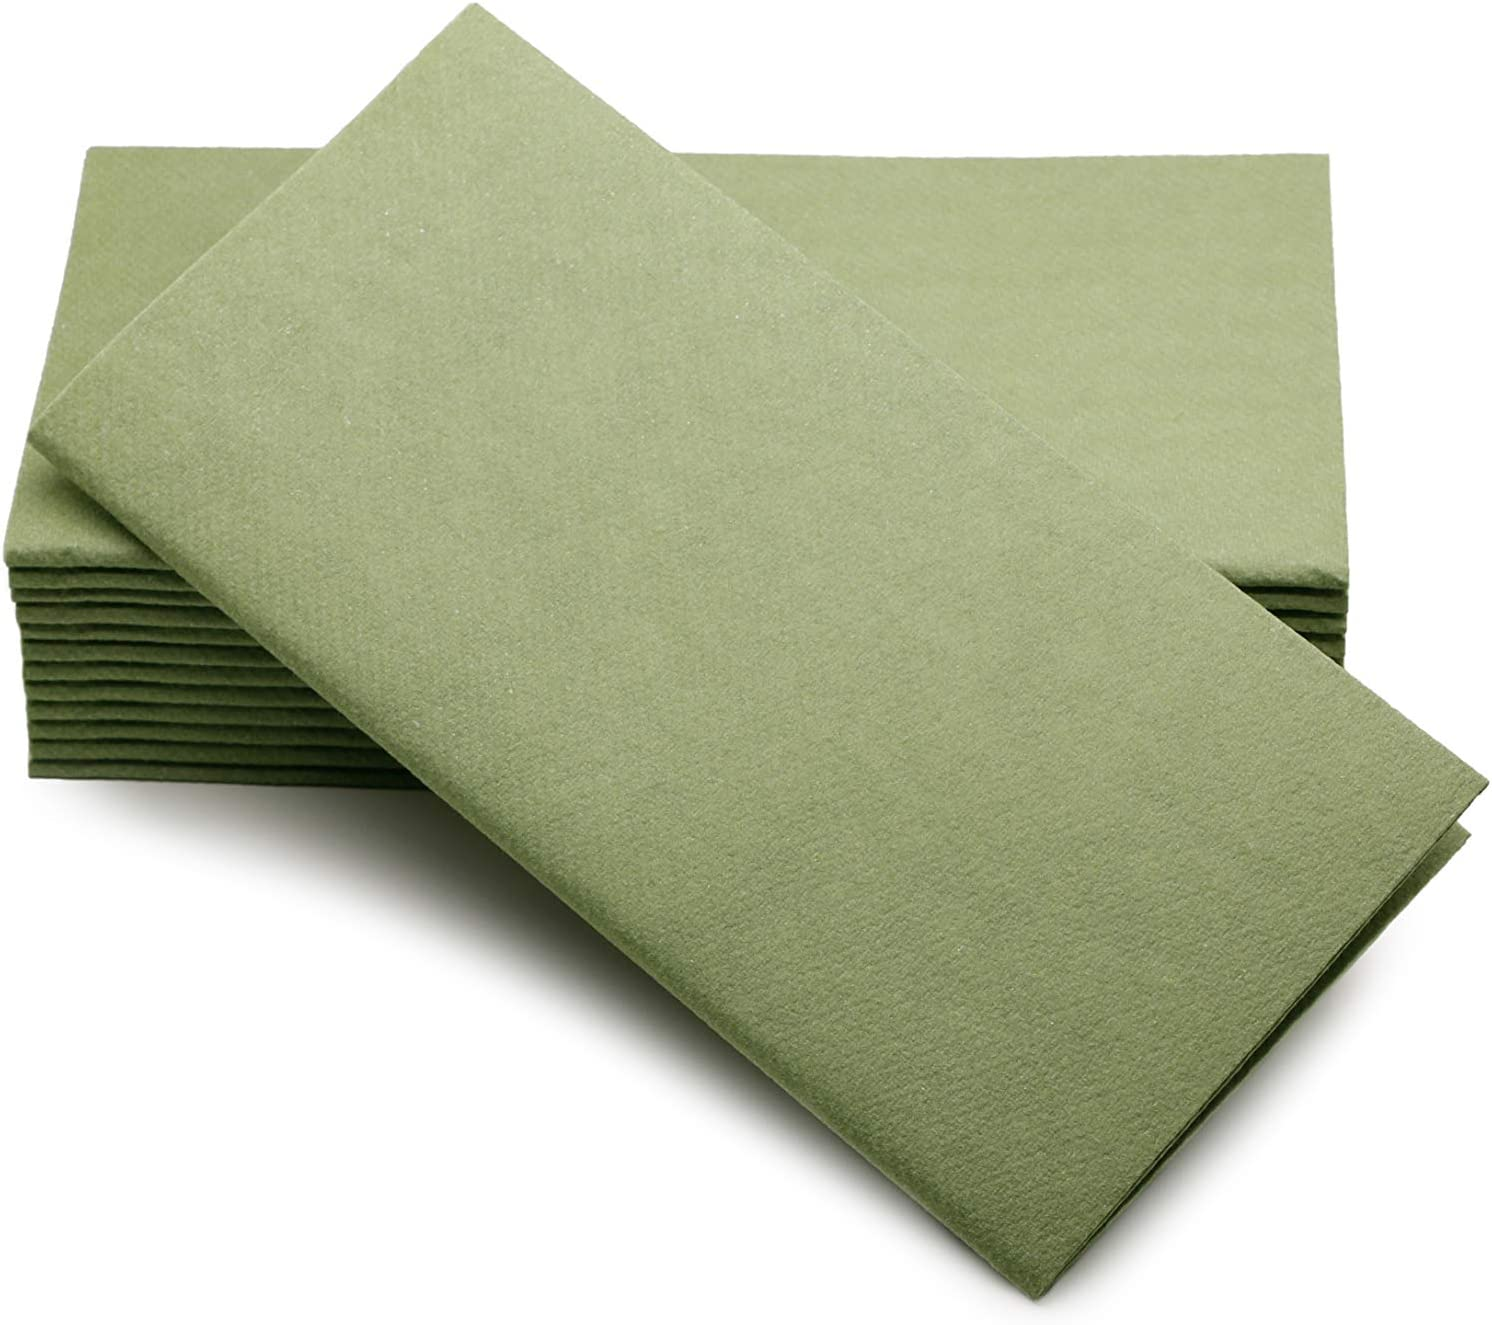 Simulinen Colored Napkins - Decorative Cloth Like & Disposable